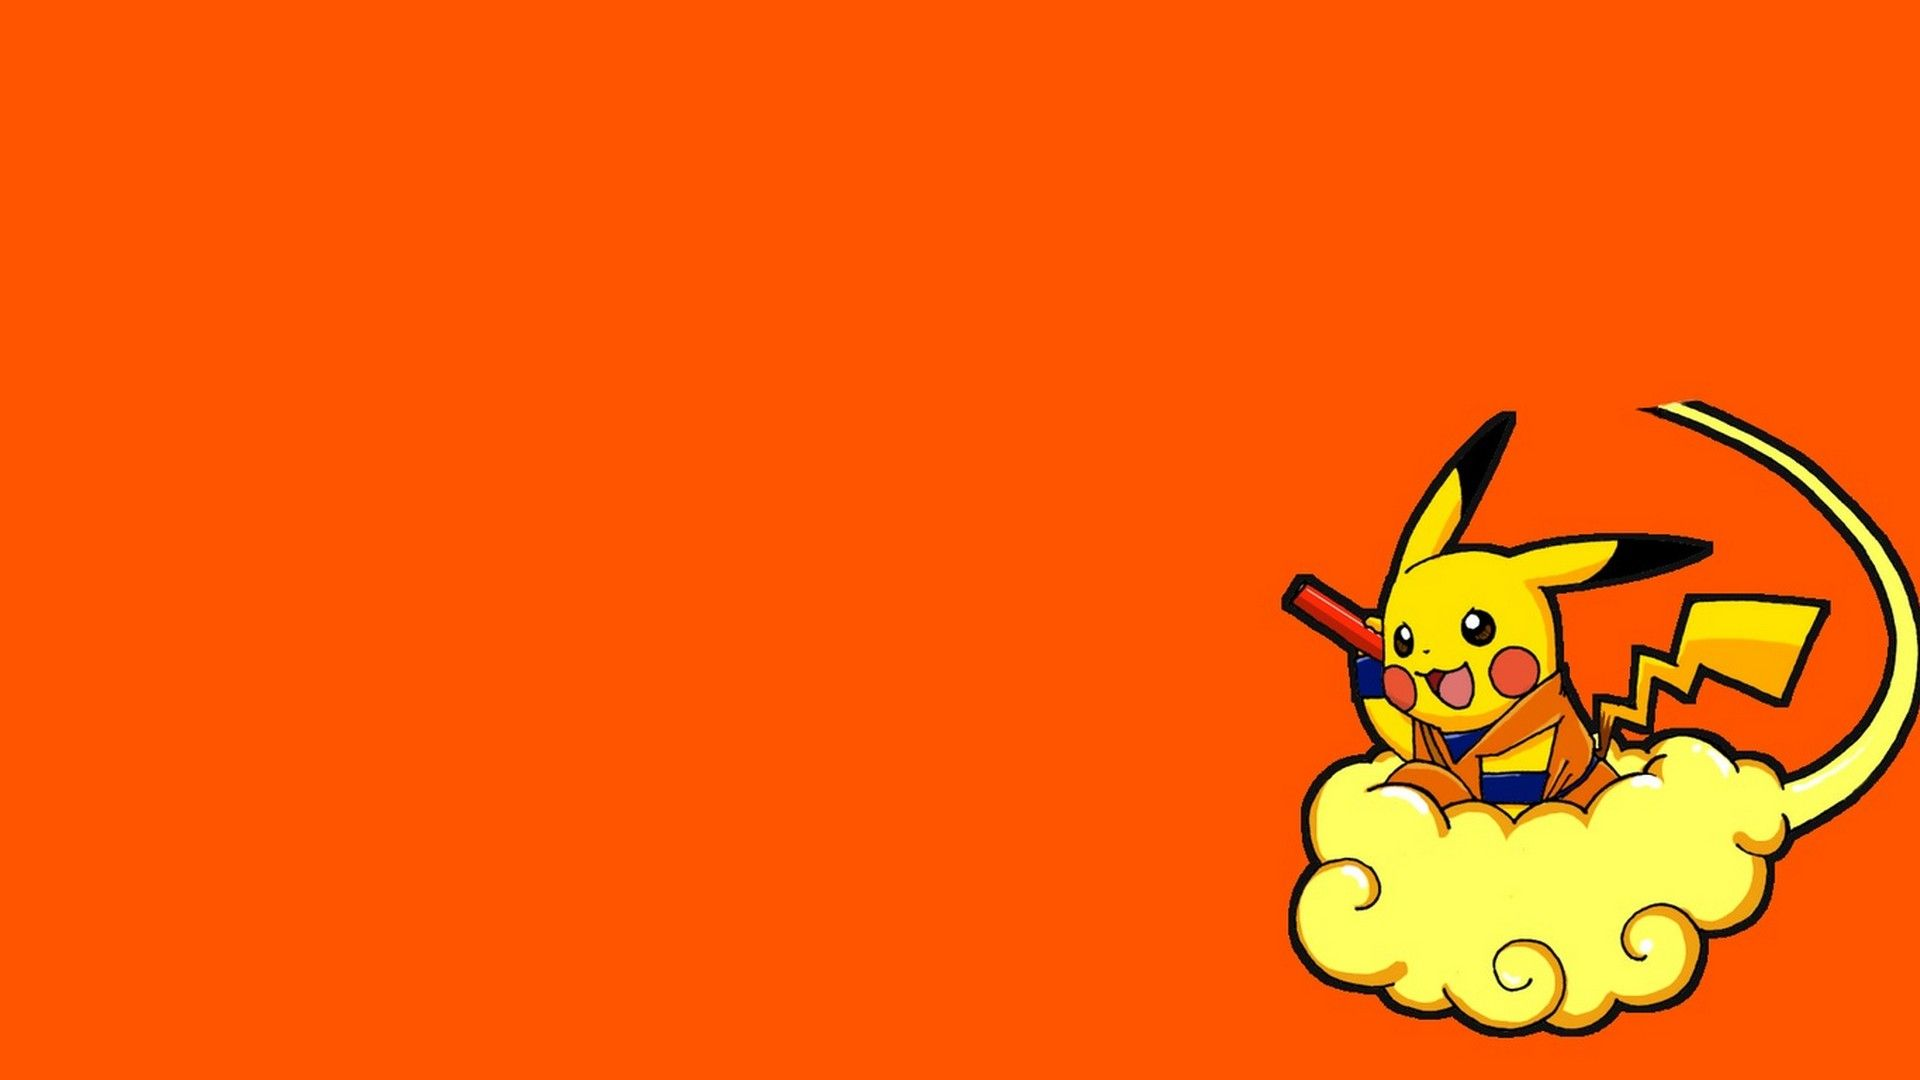 1920x1080 Pikachu Wallpapers For Computer 64 Images Pikachu Wallpaper Pikachu Wallpaper Iphone Pikachu Wallpaper Backgrounds